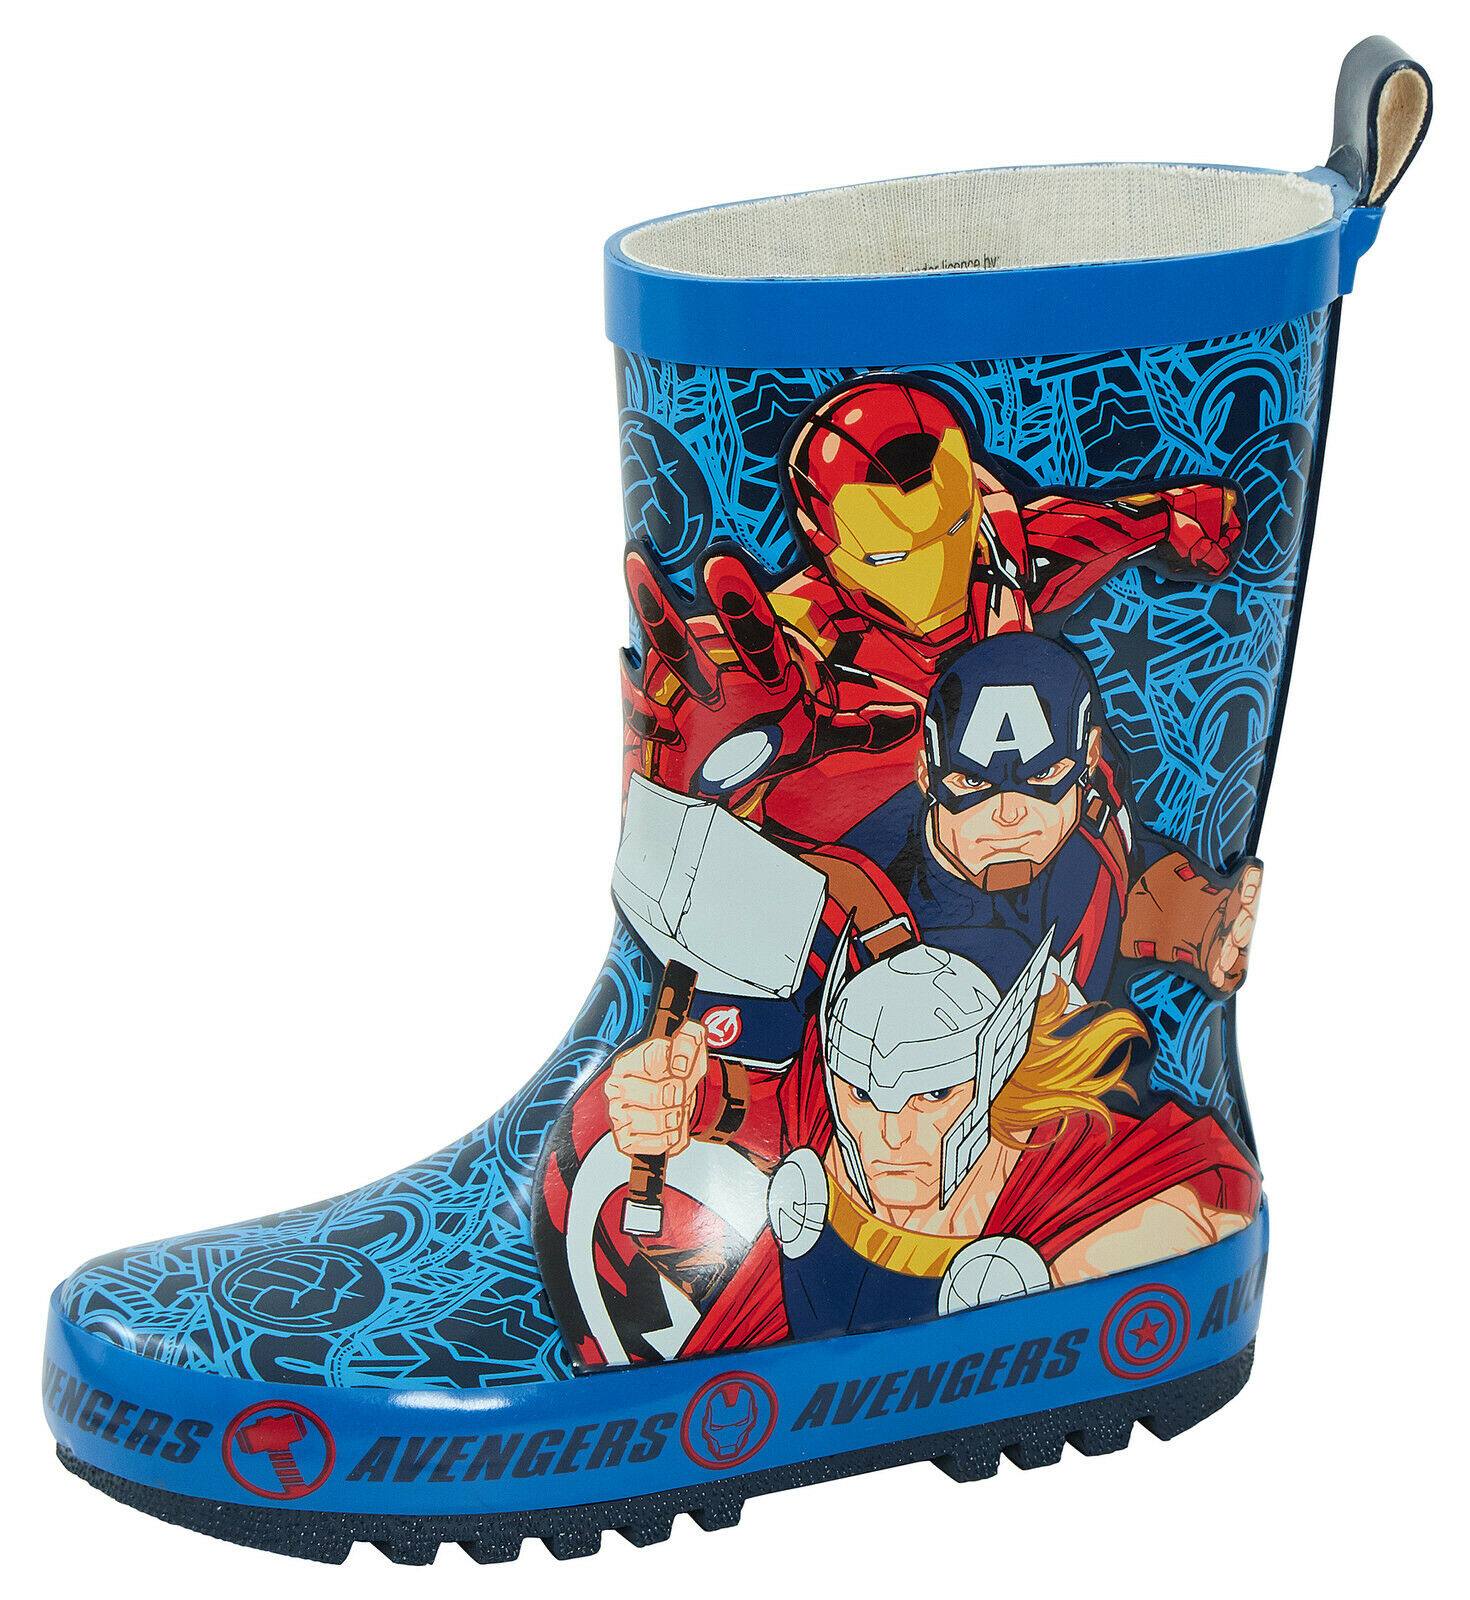 Boys Avengers Winter Wellies Shoes Boots Red Toddler Children Size UK 7-1